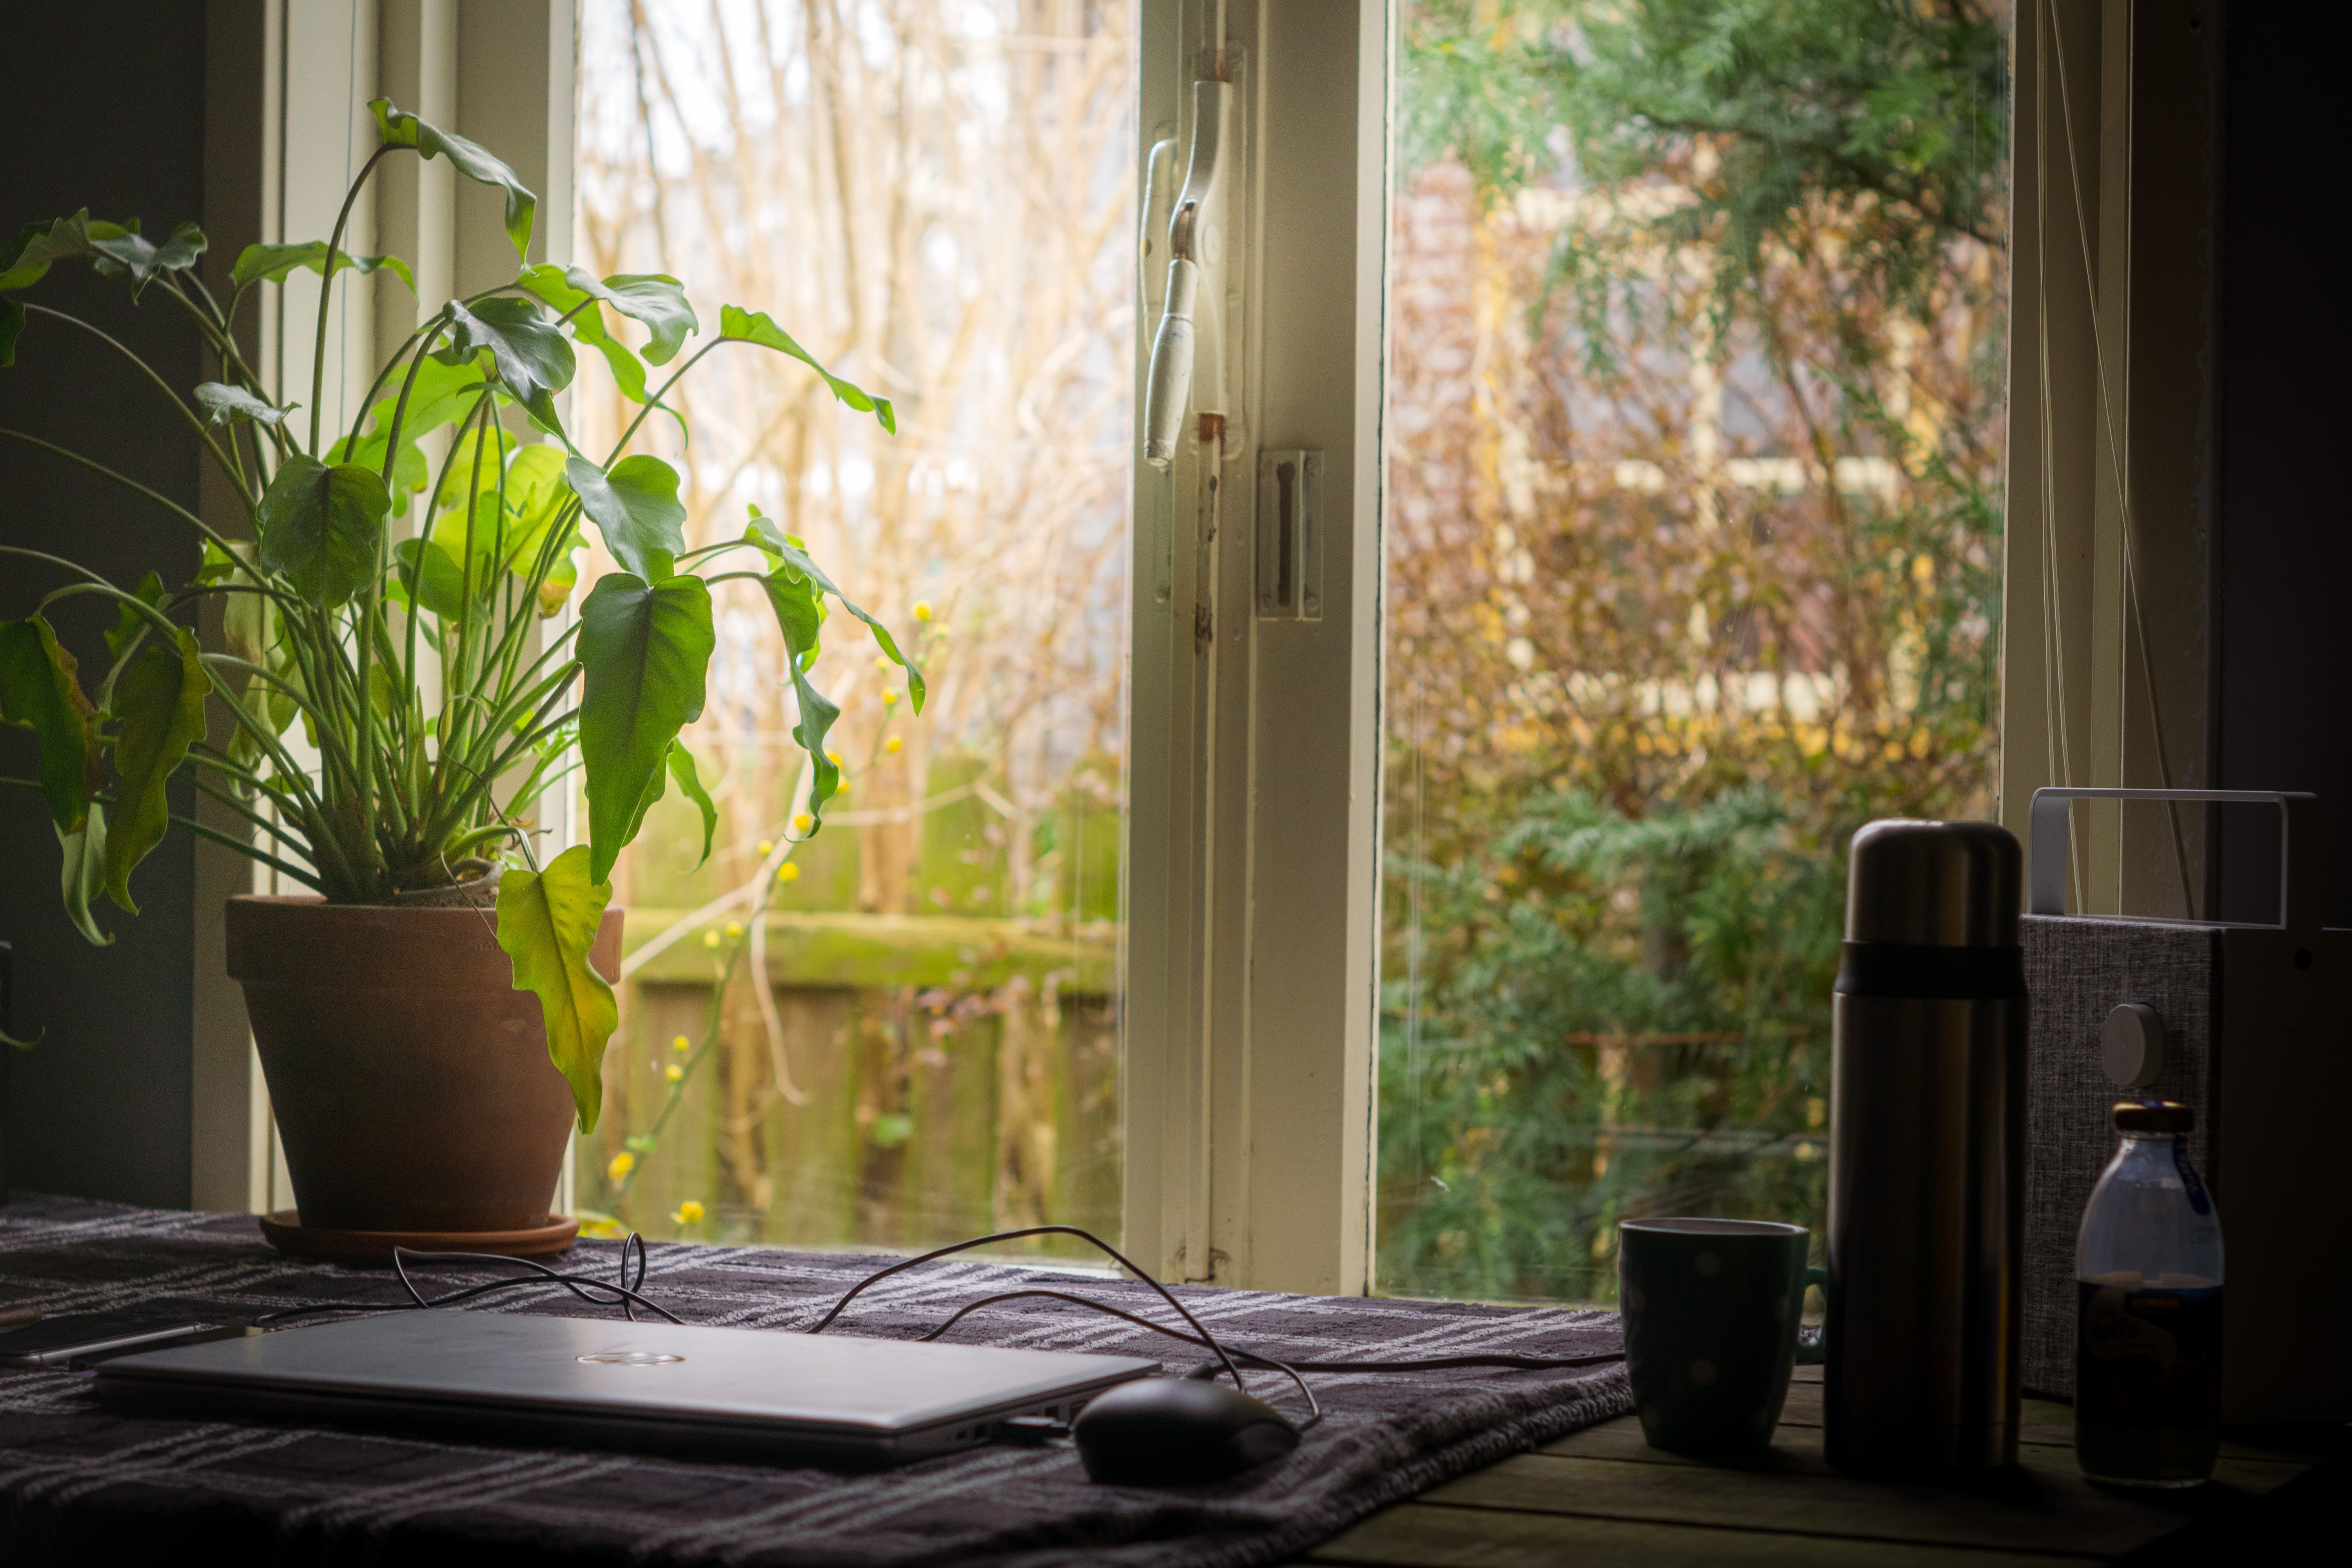 mental-health-wellbeing-remote-workers